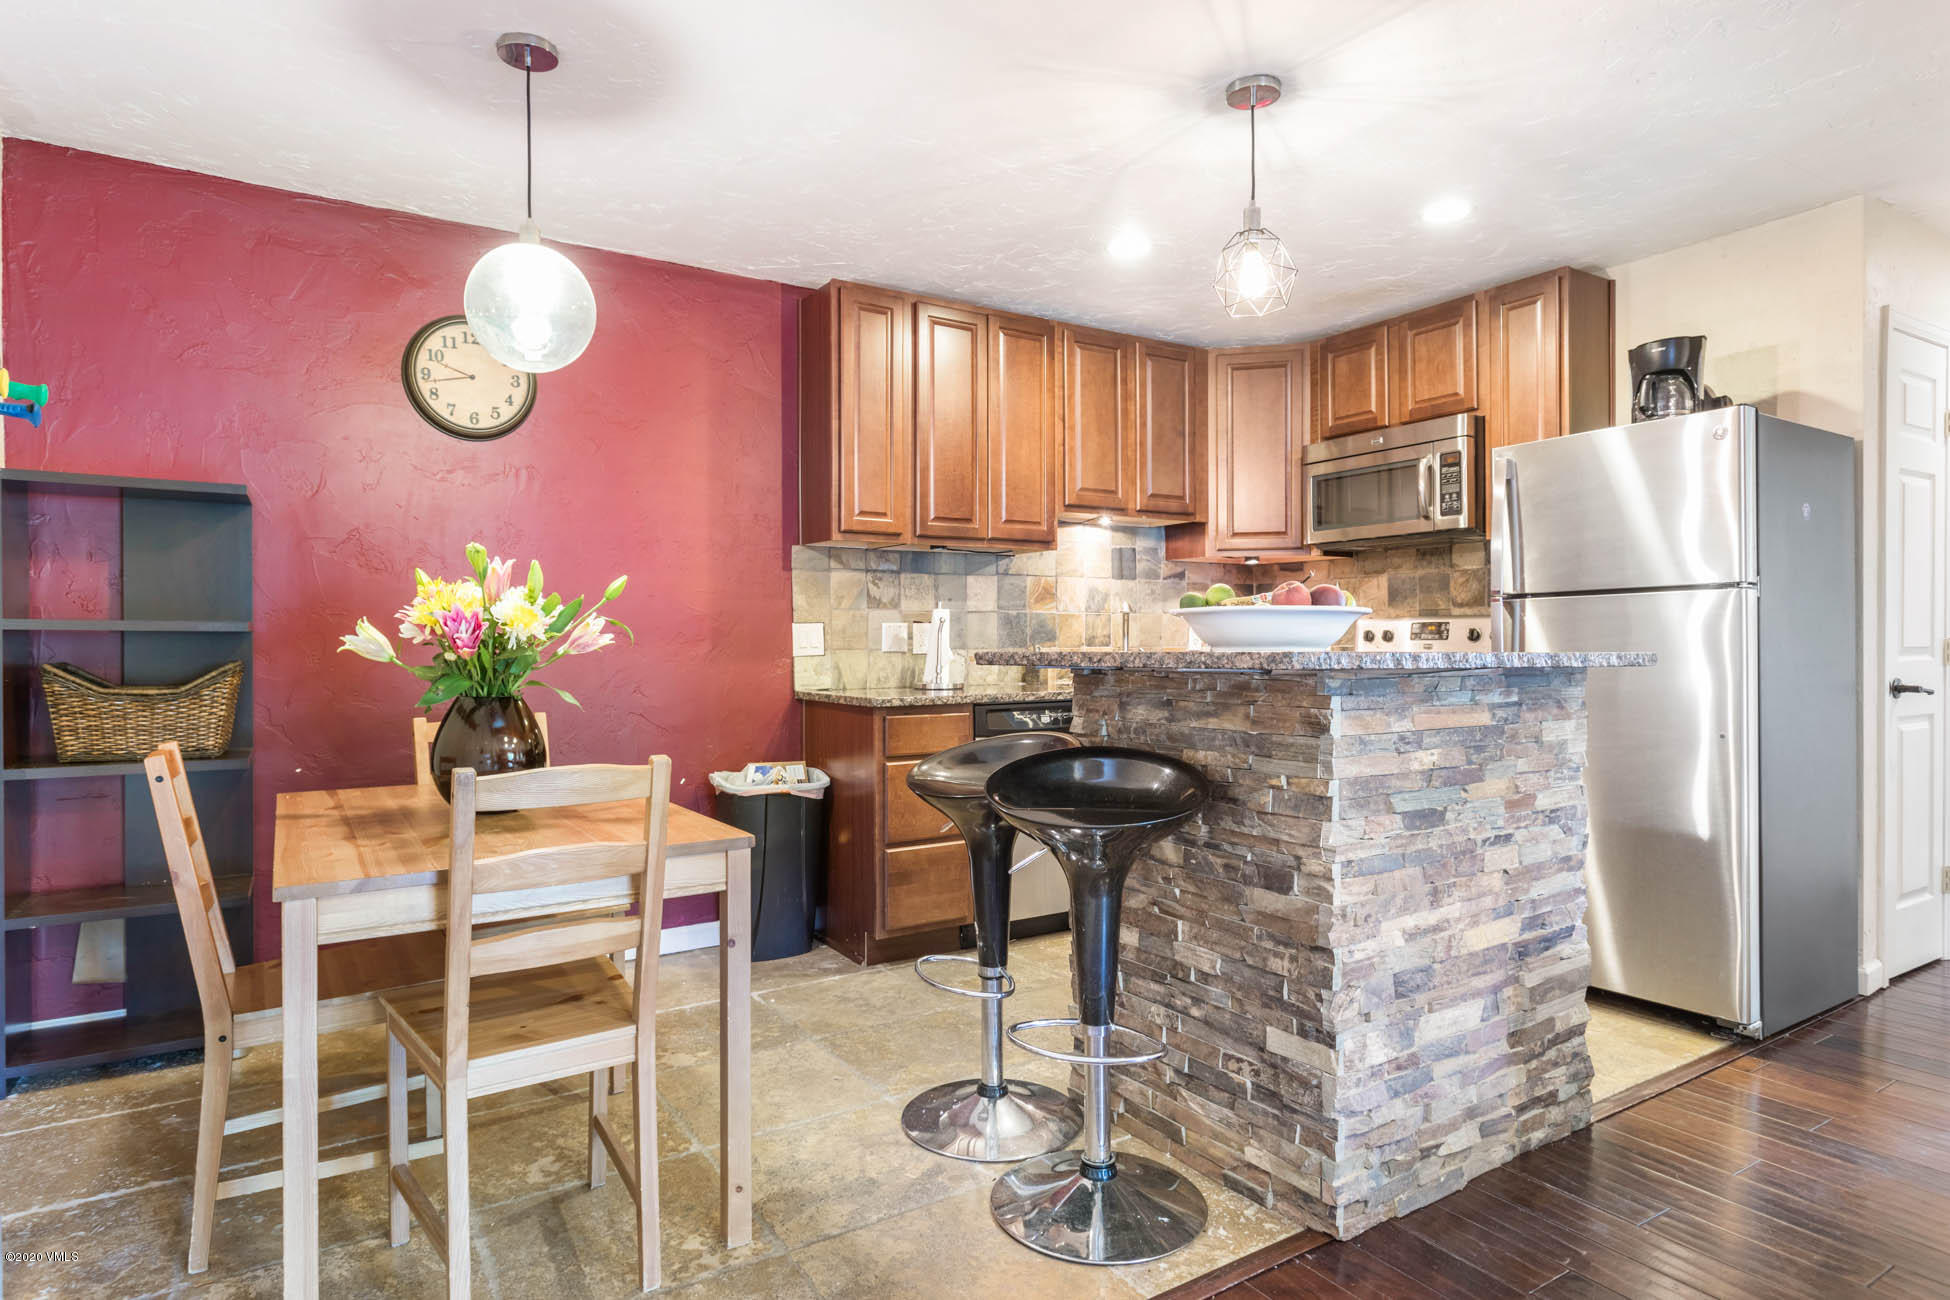 Beautifully remodeled turnkey condo in the heart of Avon with easy access to the bike path, river, and Nottingham Lake. The kitchen layout has been greatly improved with a functional island that opens up the space and creates a comfortable area to hang out with family and friends. The healthy HOA is well run and offers reasonable monthly dues and a new roof in 2019. 1 assigned parking spot plus a second unassigned parking spot.